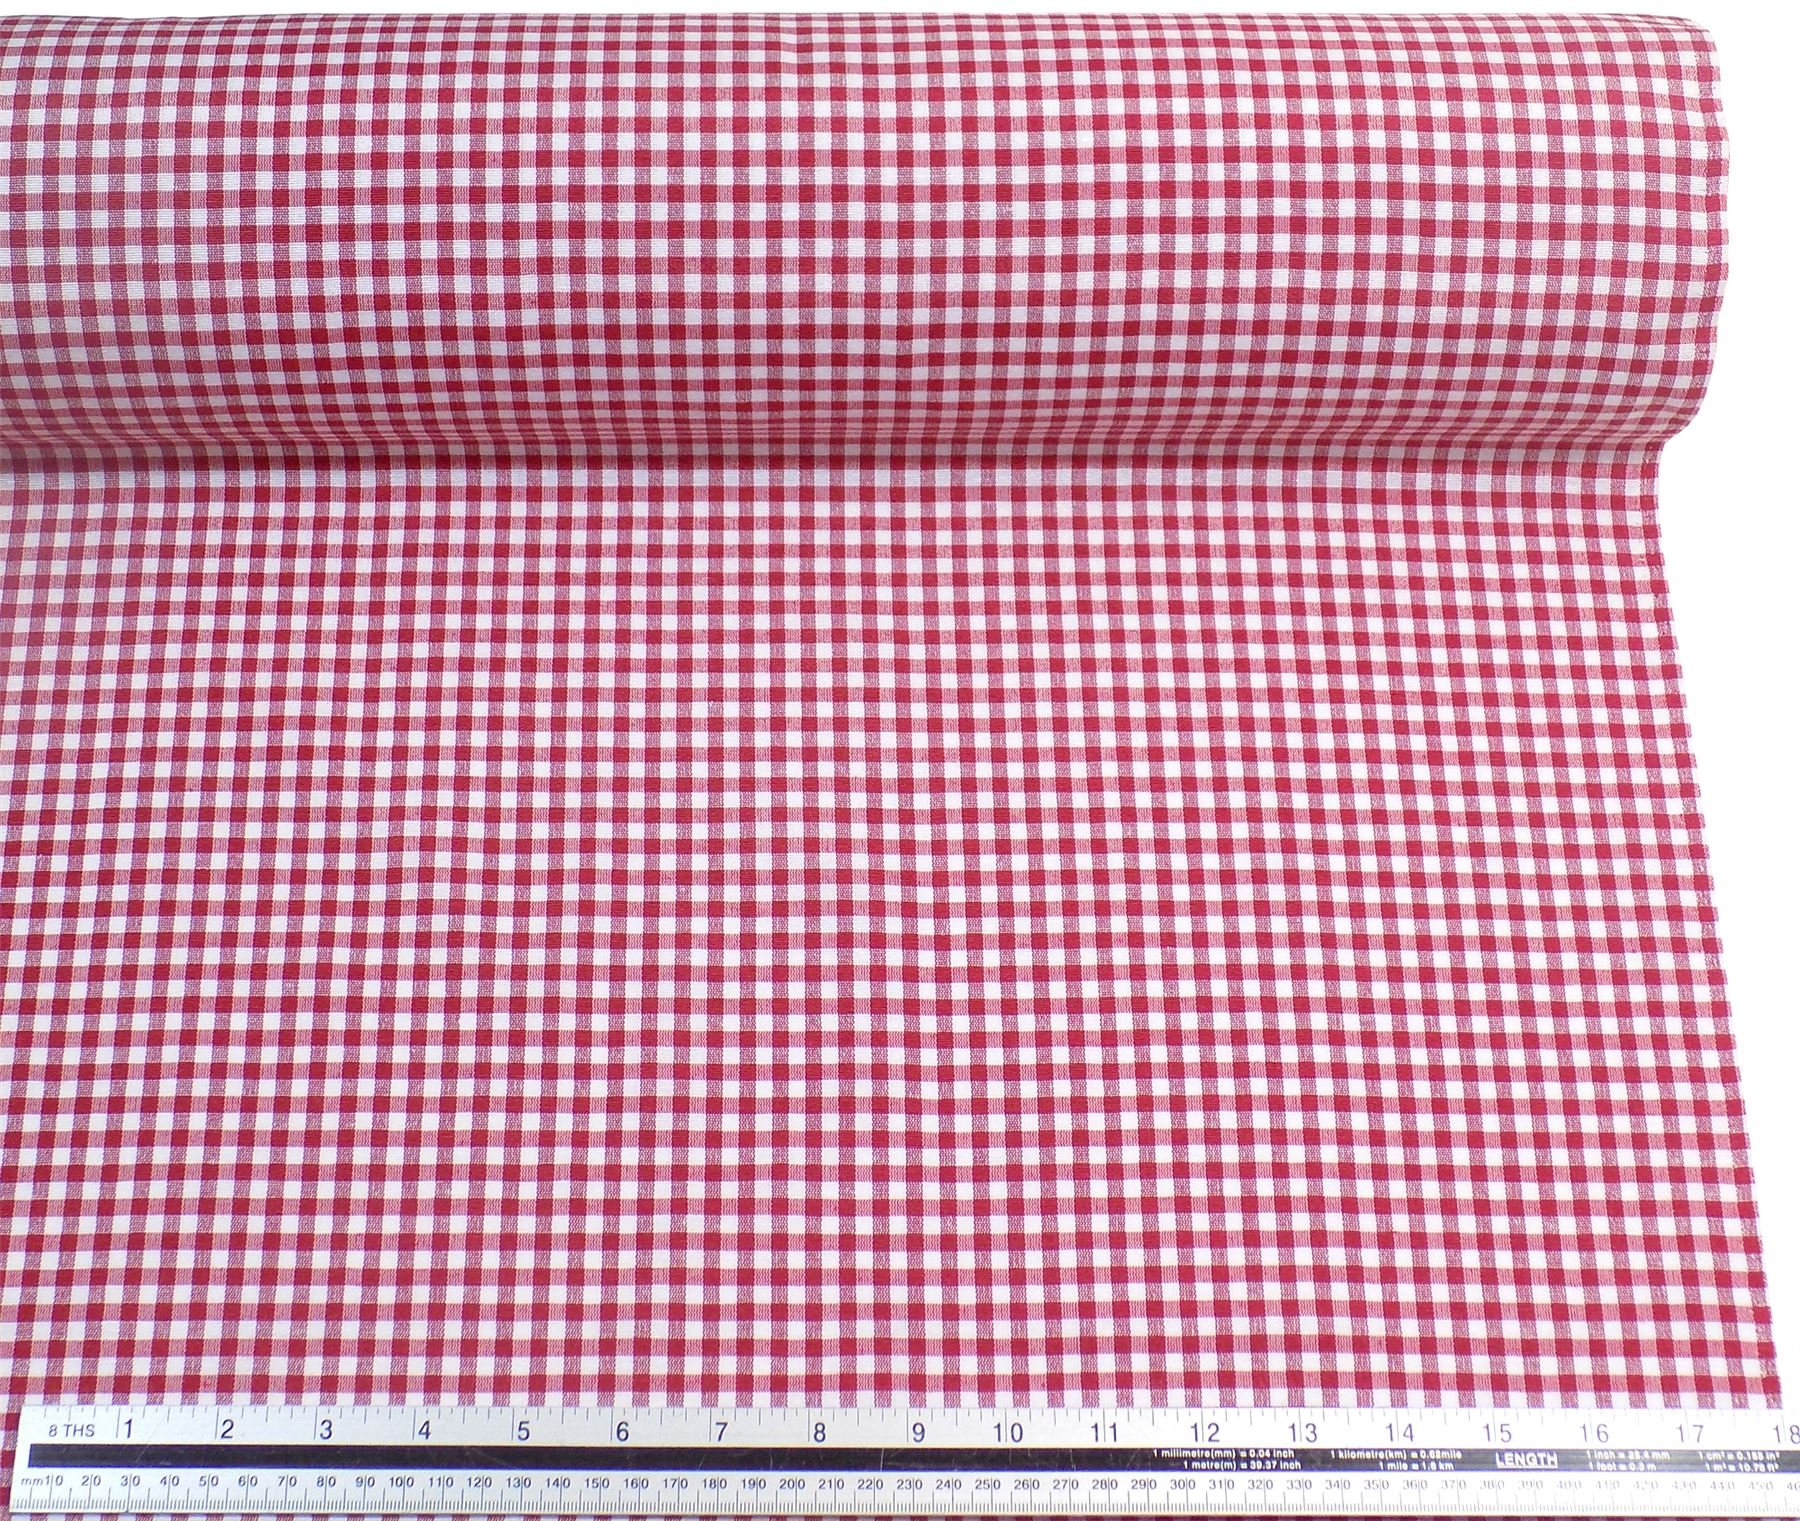 Red white gingham check cotton blend high quality fabric for Gingham fabric